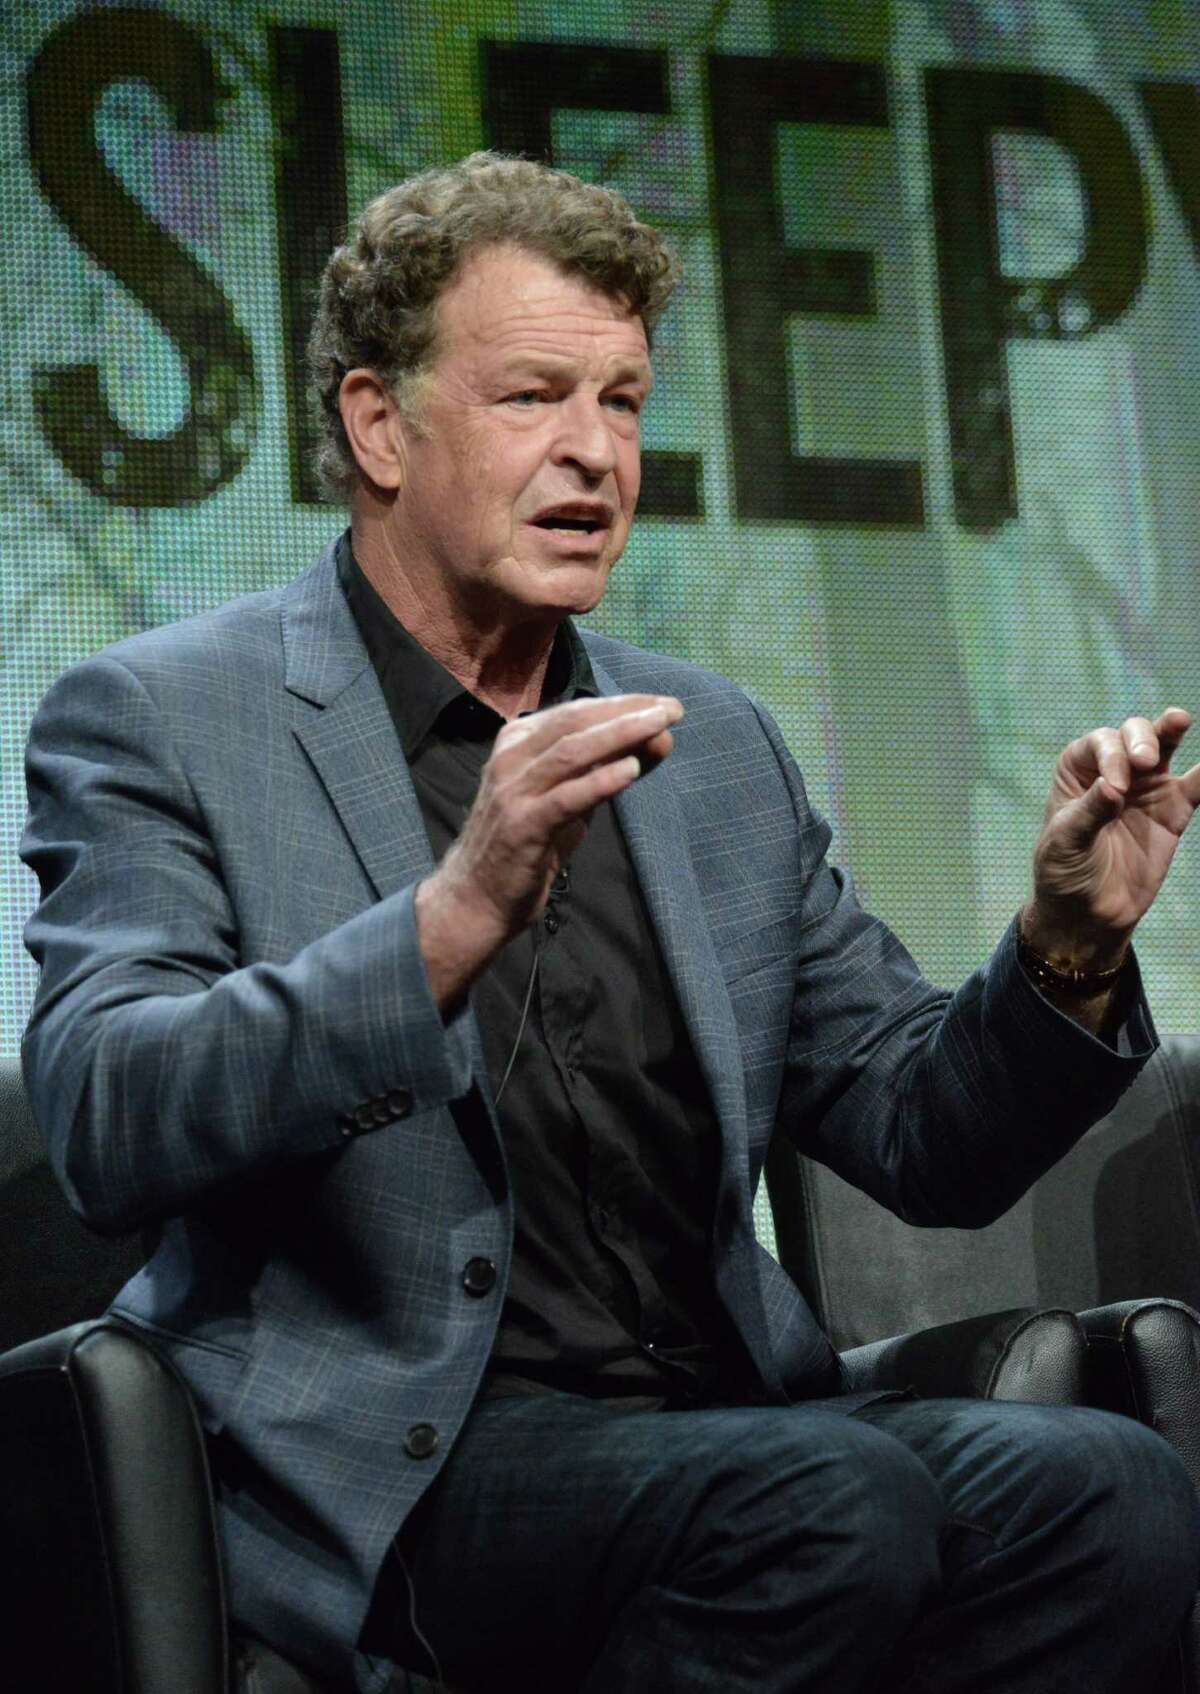 John Noble speaks on stage during the